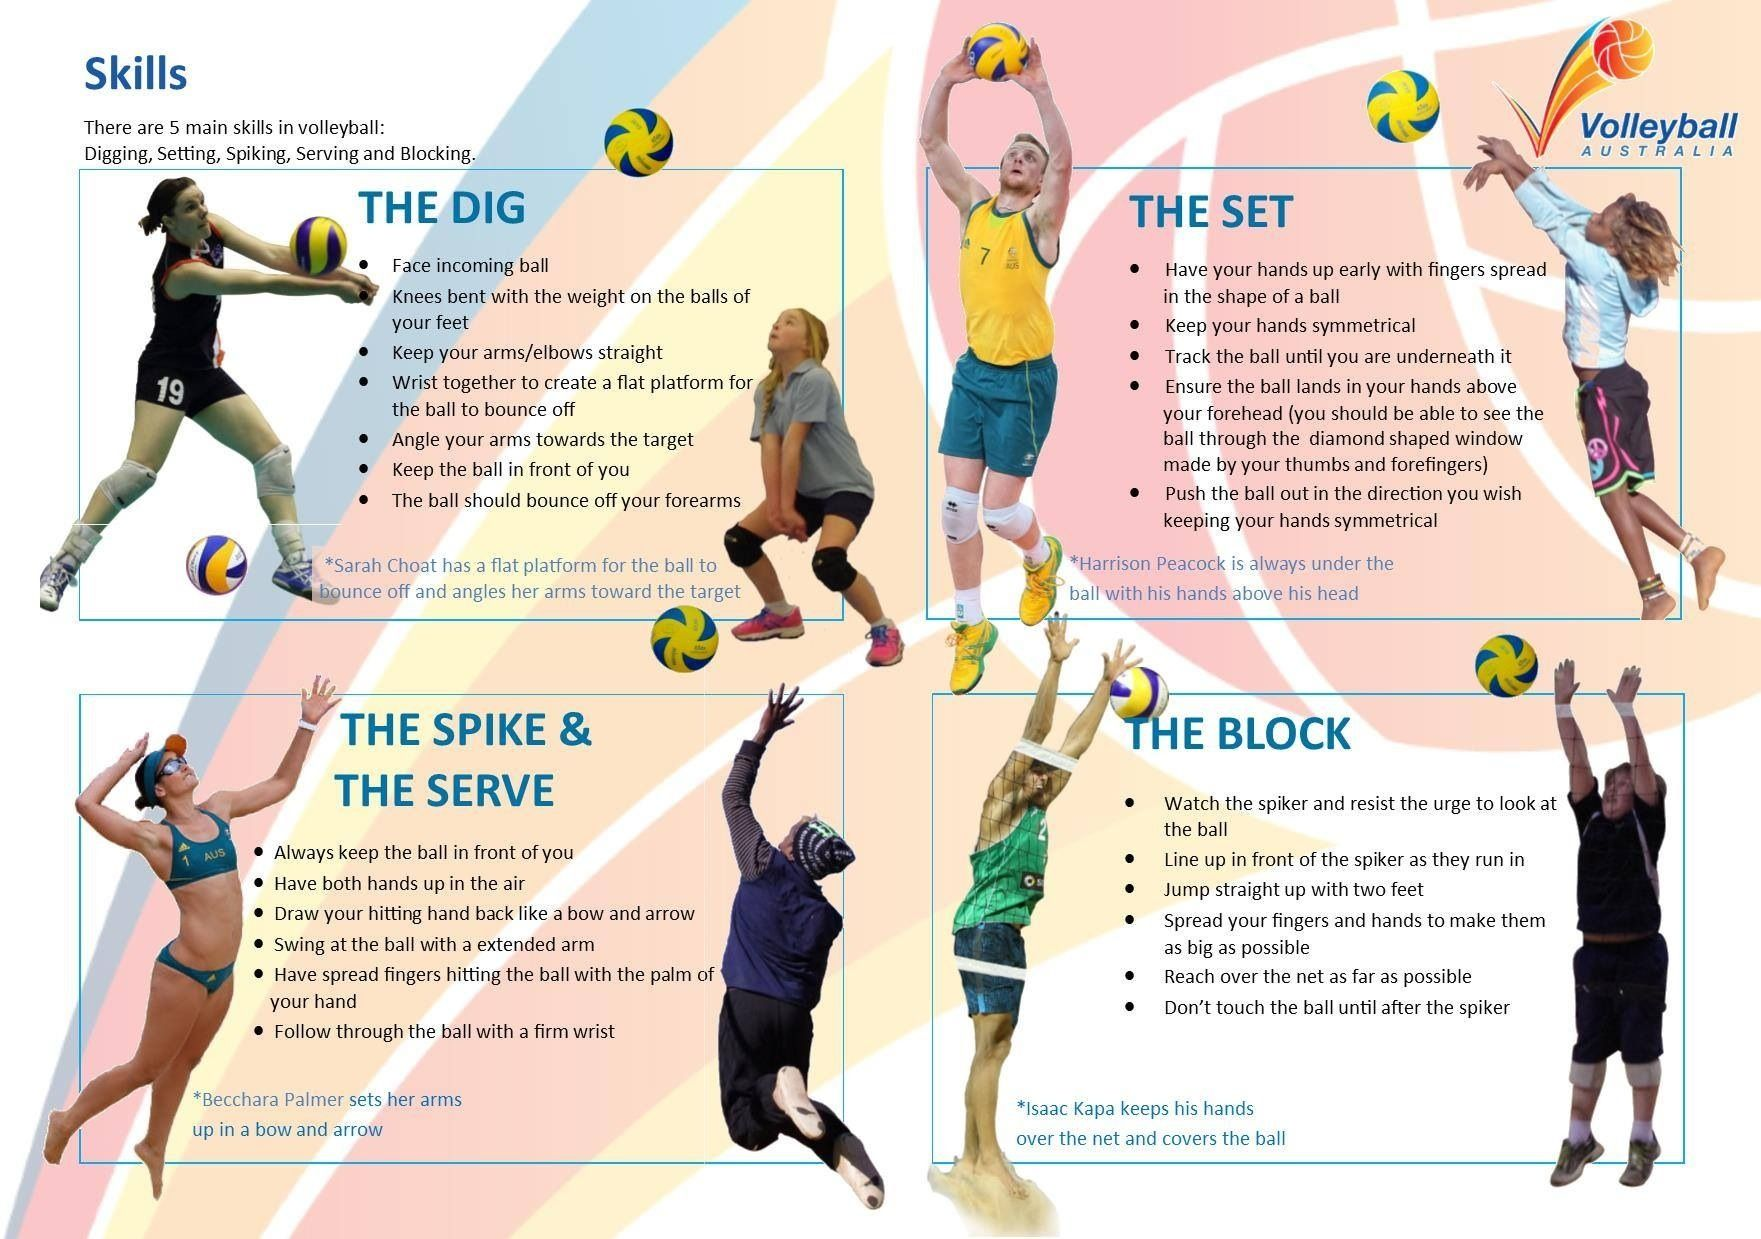 biomechanical principles in volleyball dig